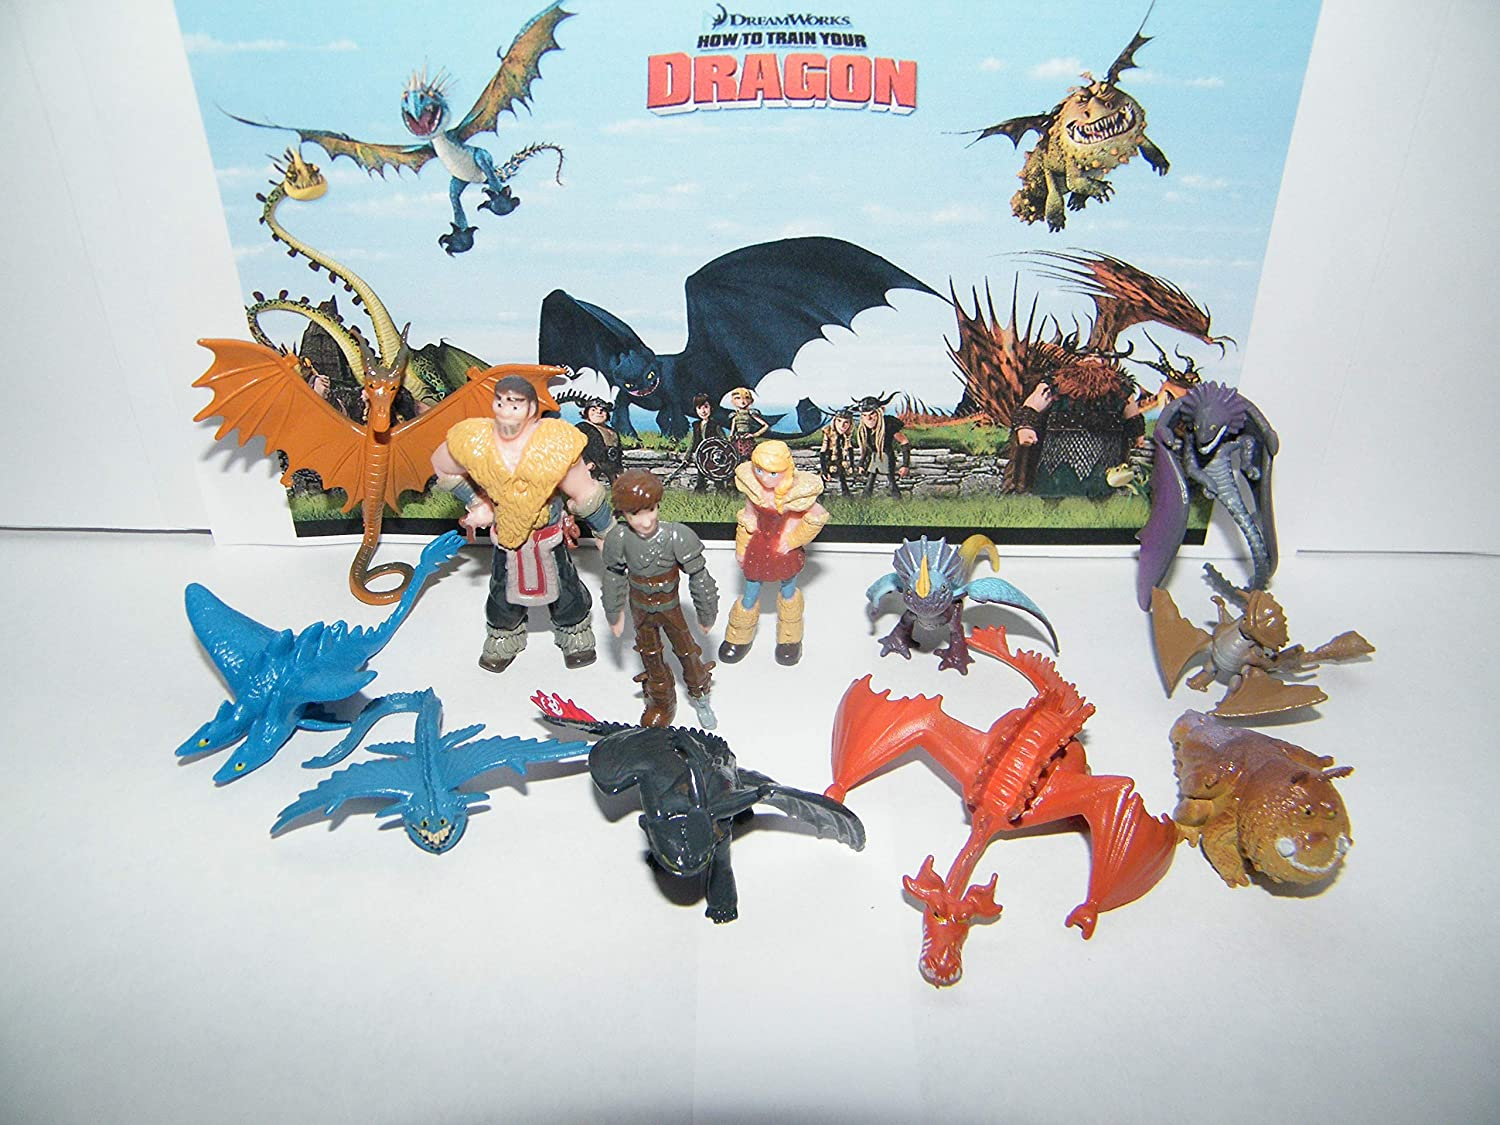 Monogram How To Train Your Dragon Figure Set of 12 Mini Toys Party Favors with many Dragons People and New Characters